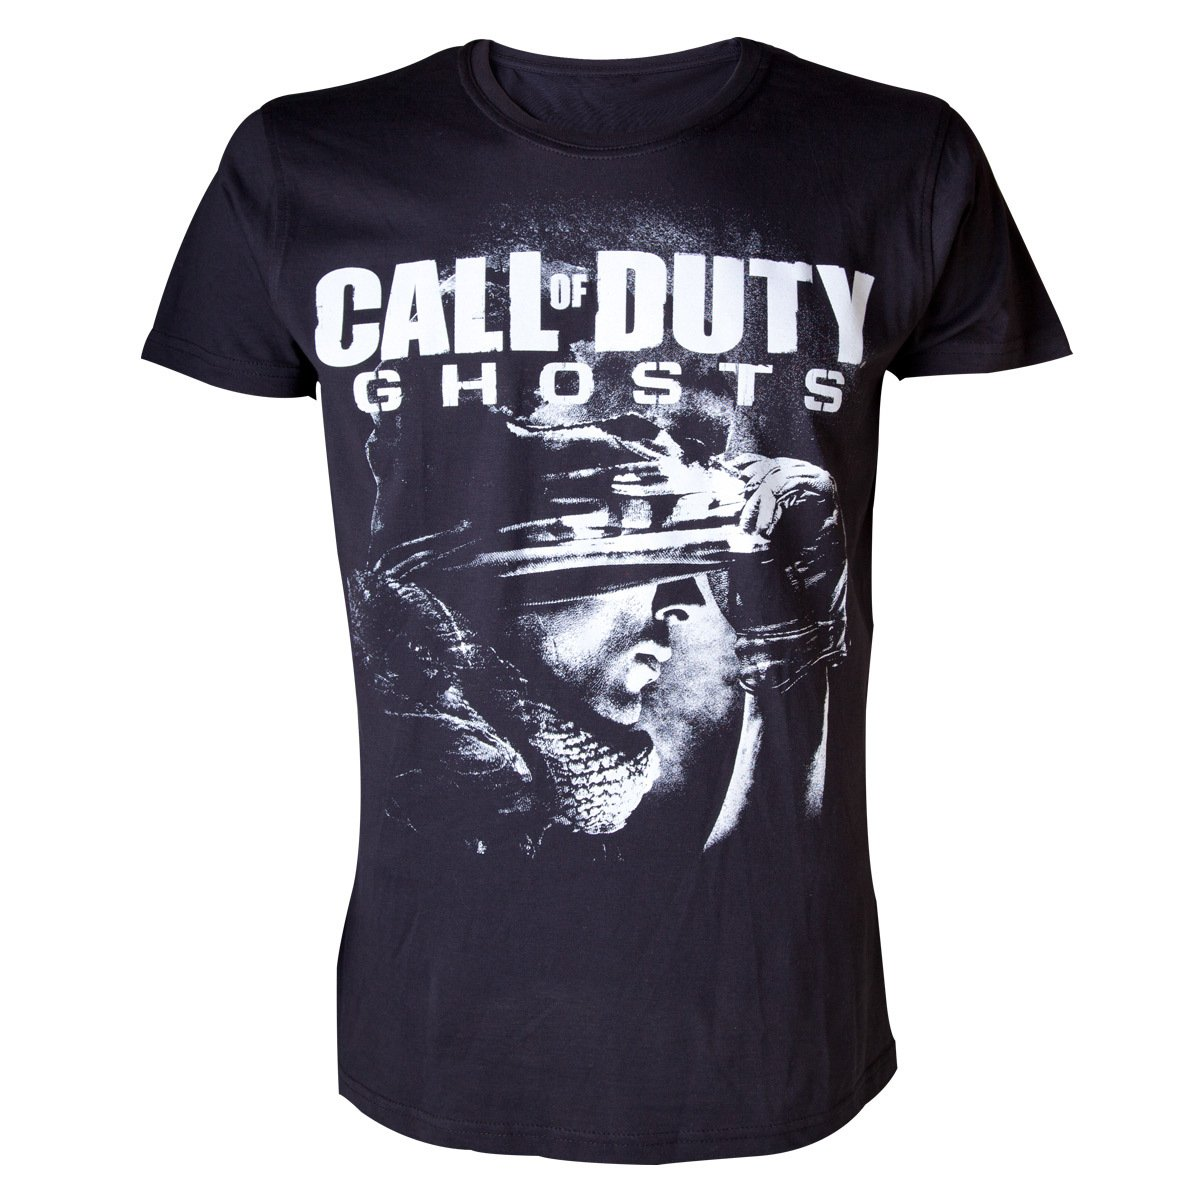 Call_Of_Duty_Ghosts_Black_Graphic_Tee___55709.1376471276.1280.1280